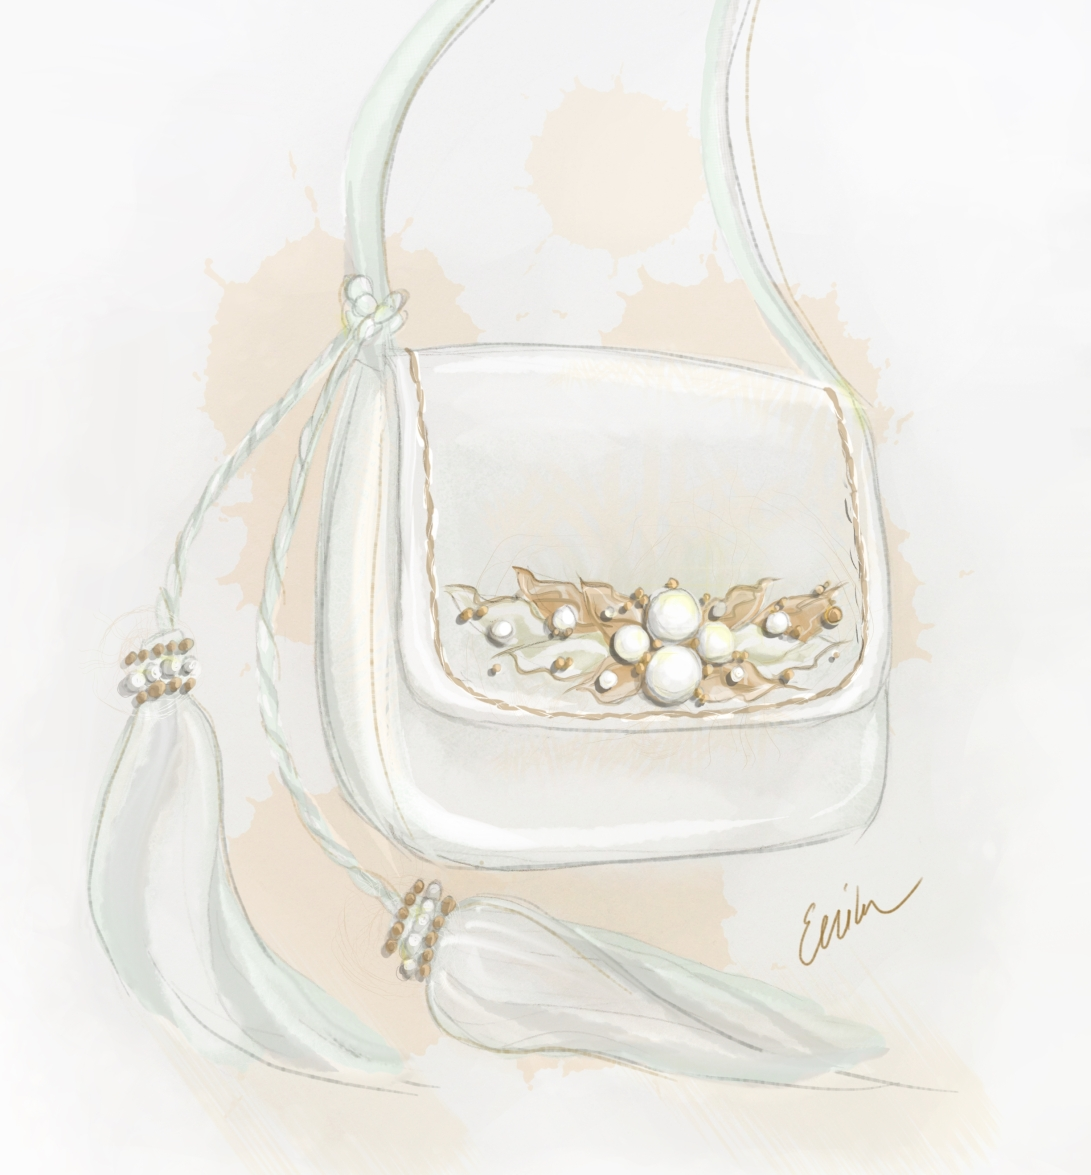 Dollcloud white leather shoulder bag design illustration